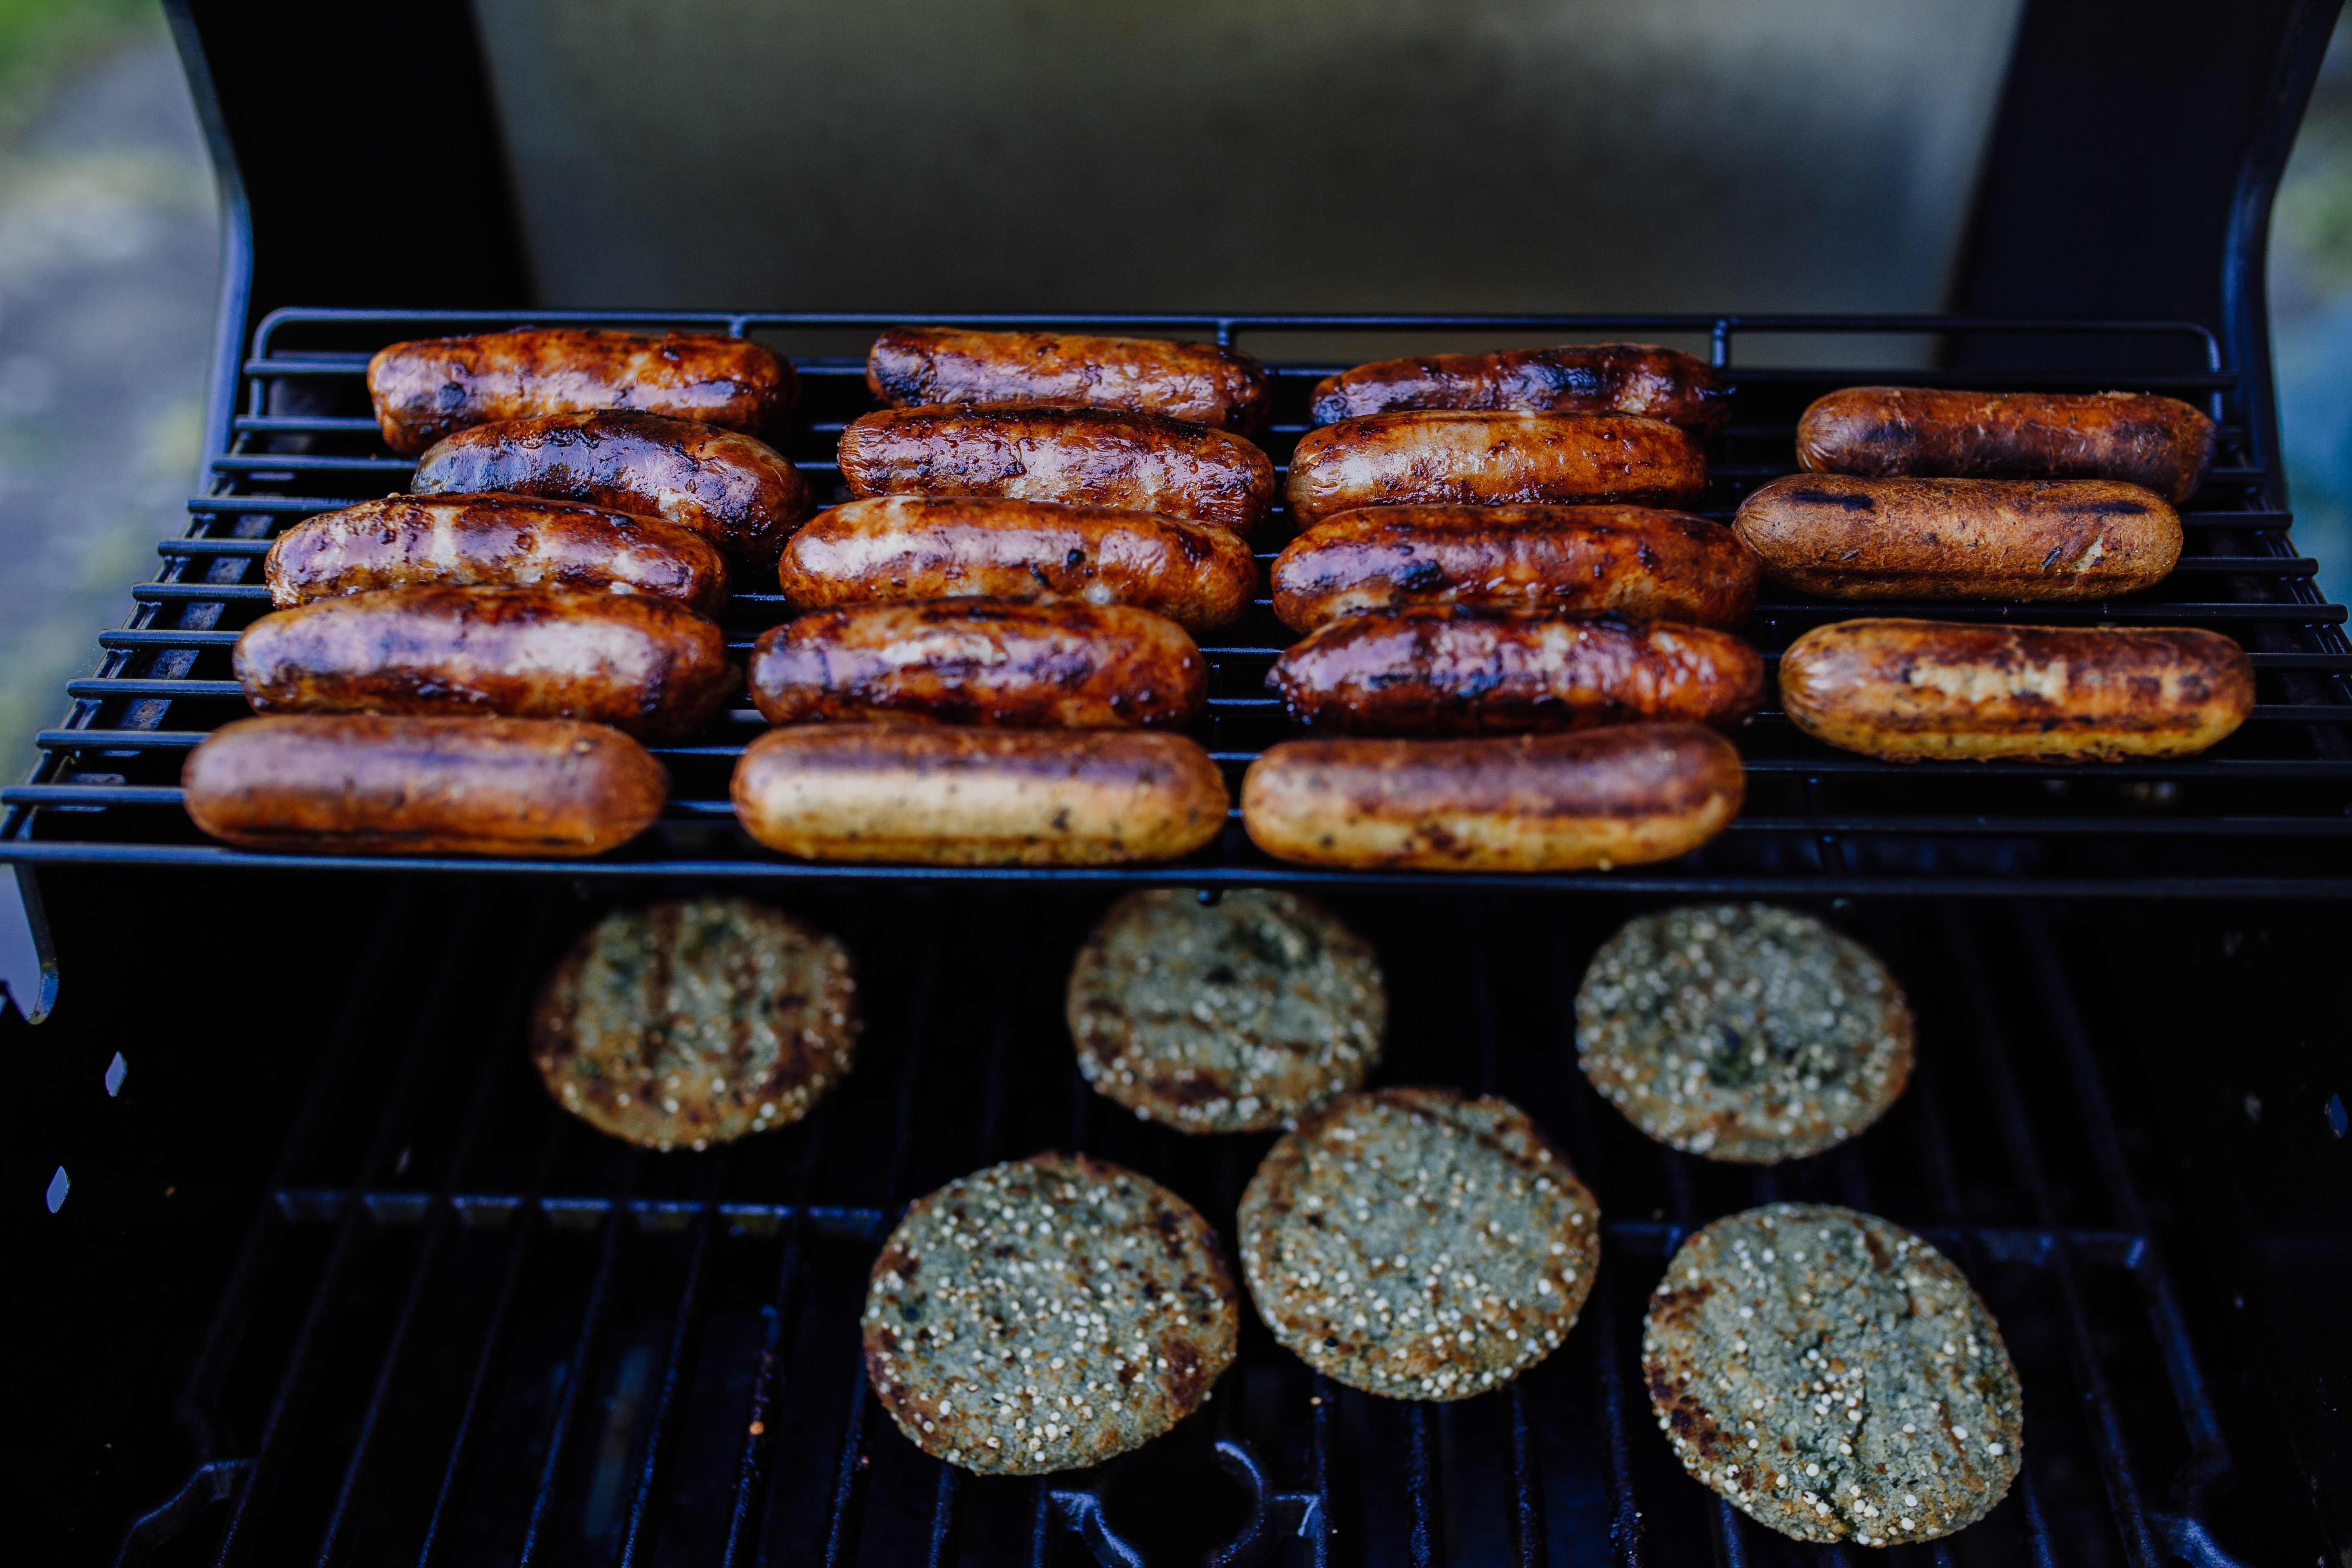 grilled patty and sausage